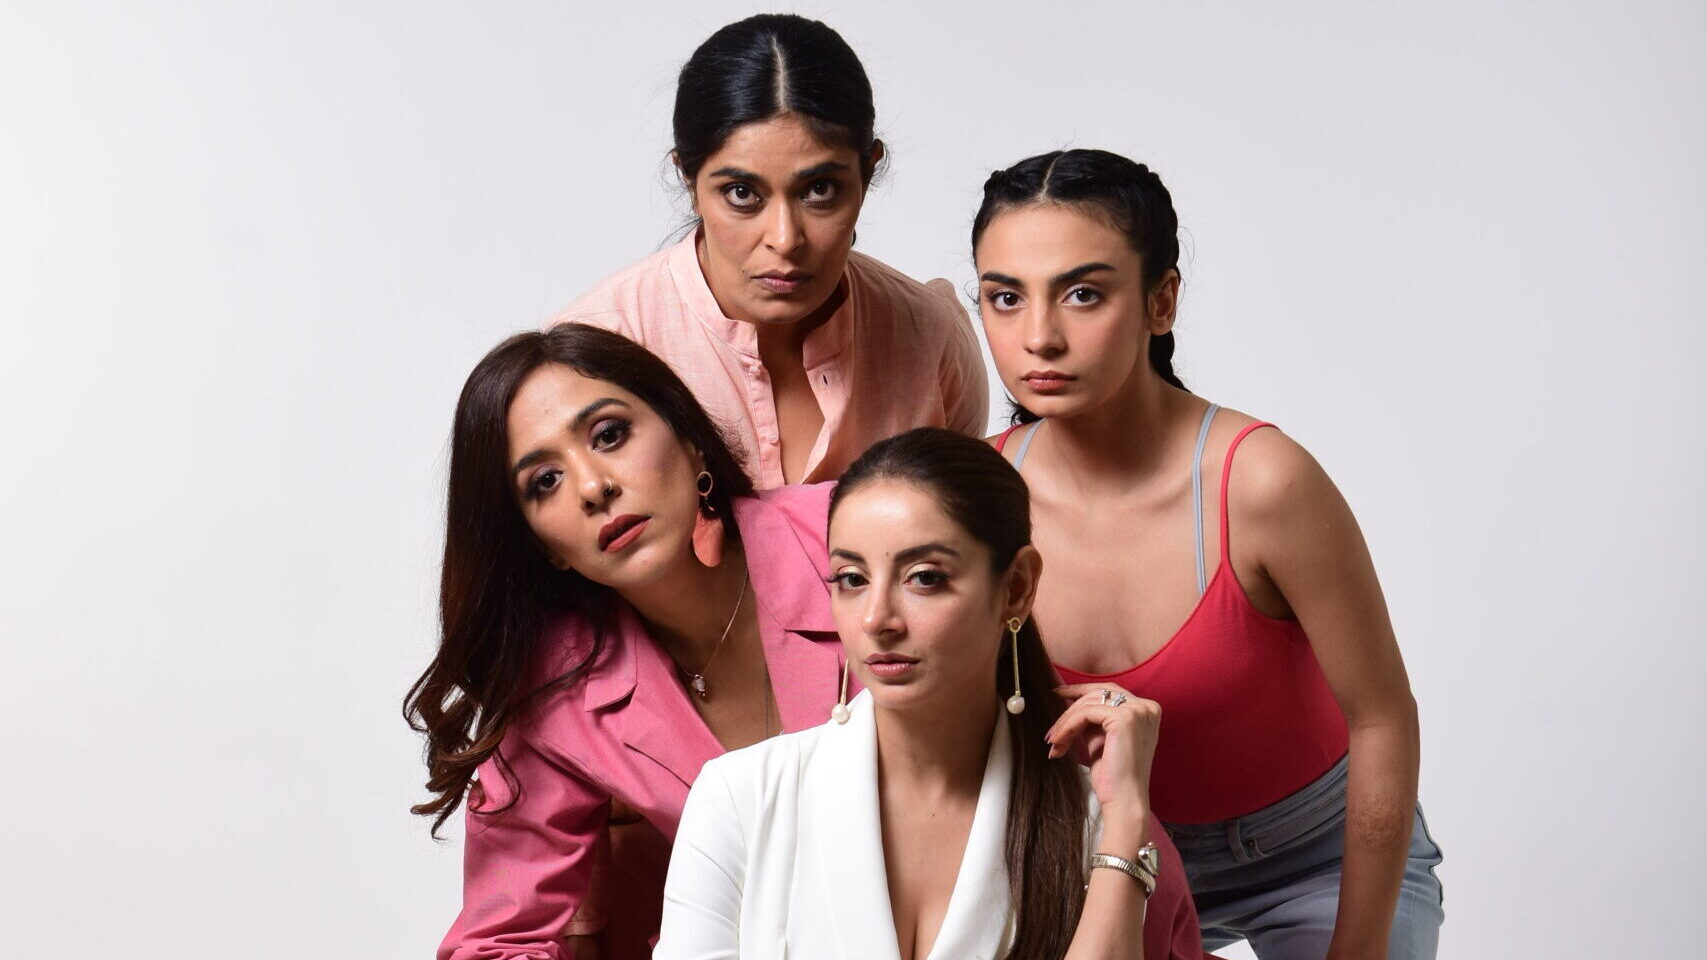 Risqué Pakistani Show Pushes Modesty Boundaries